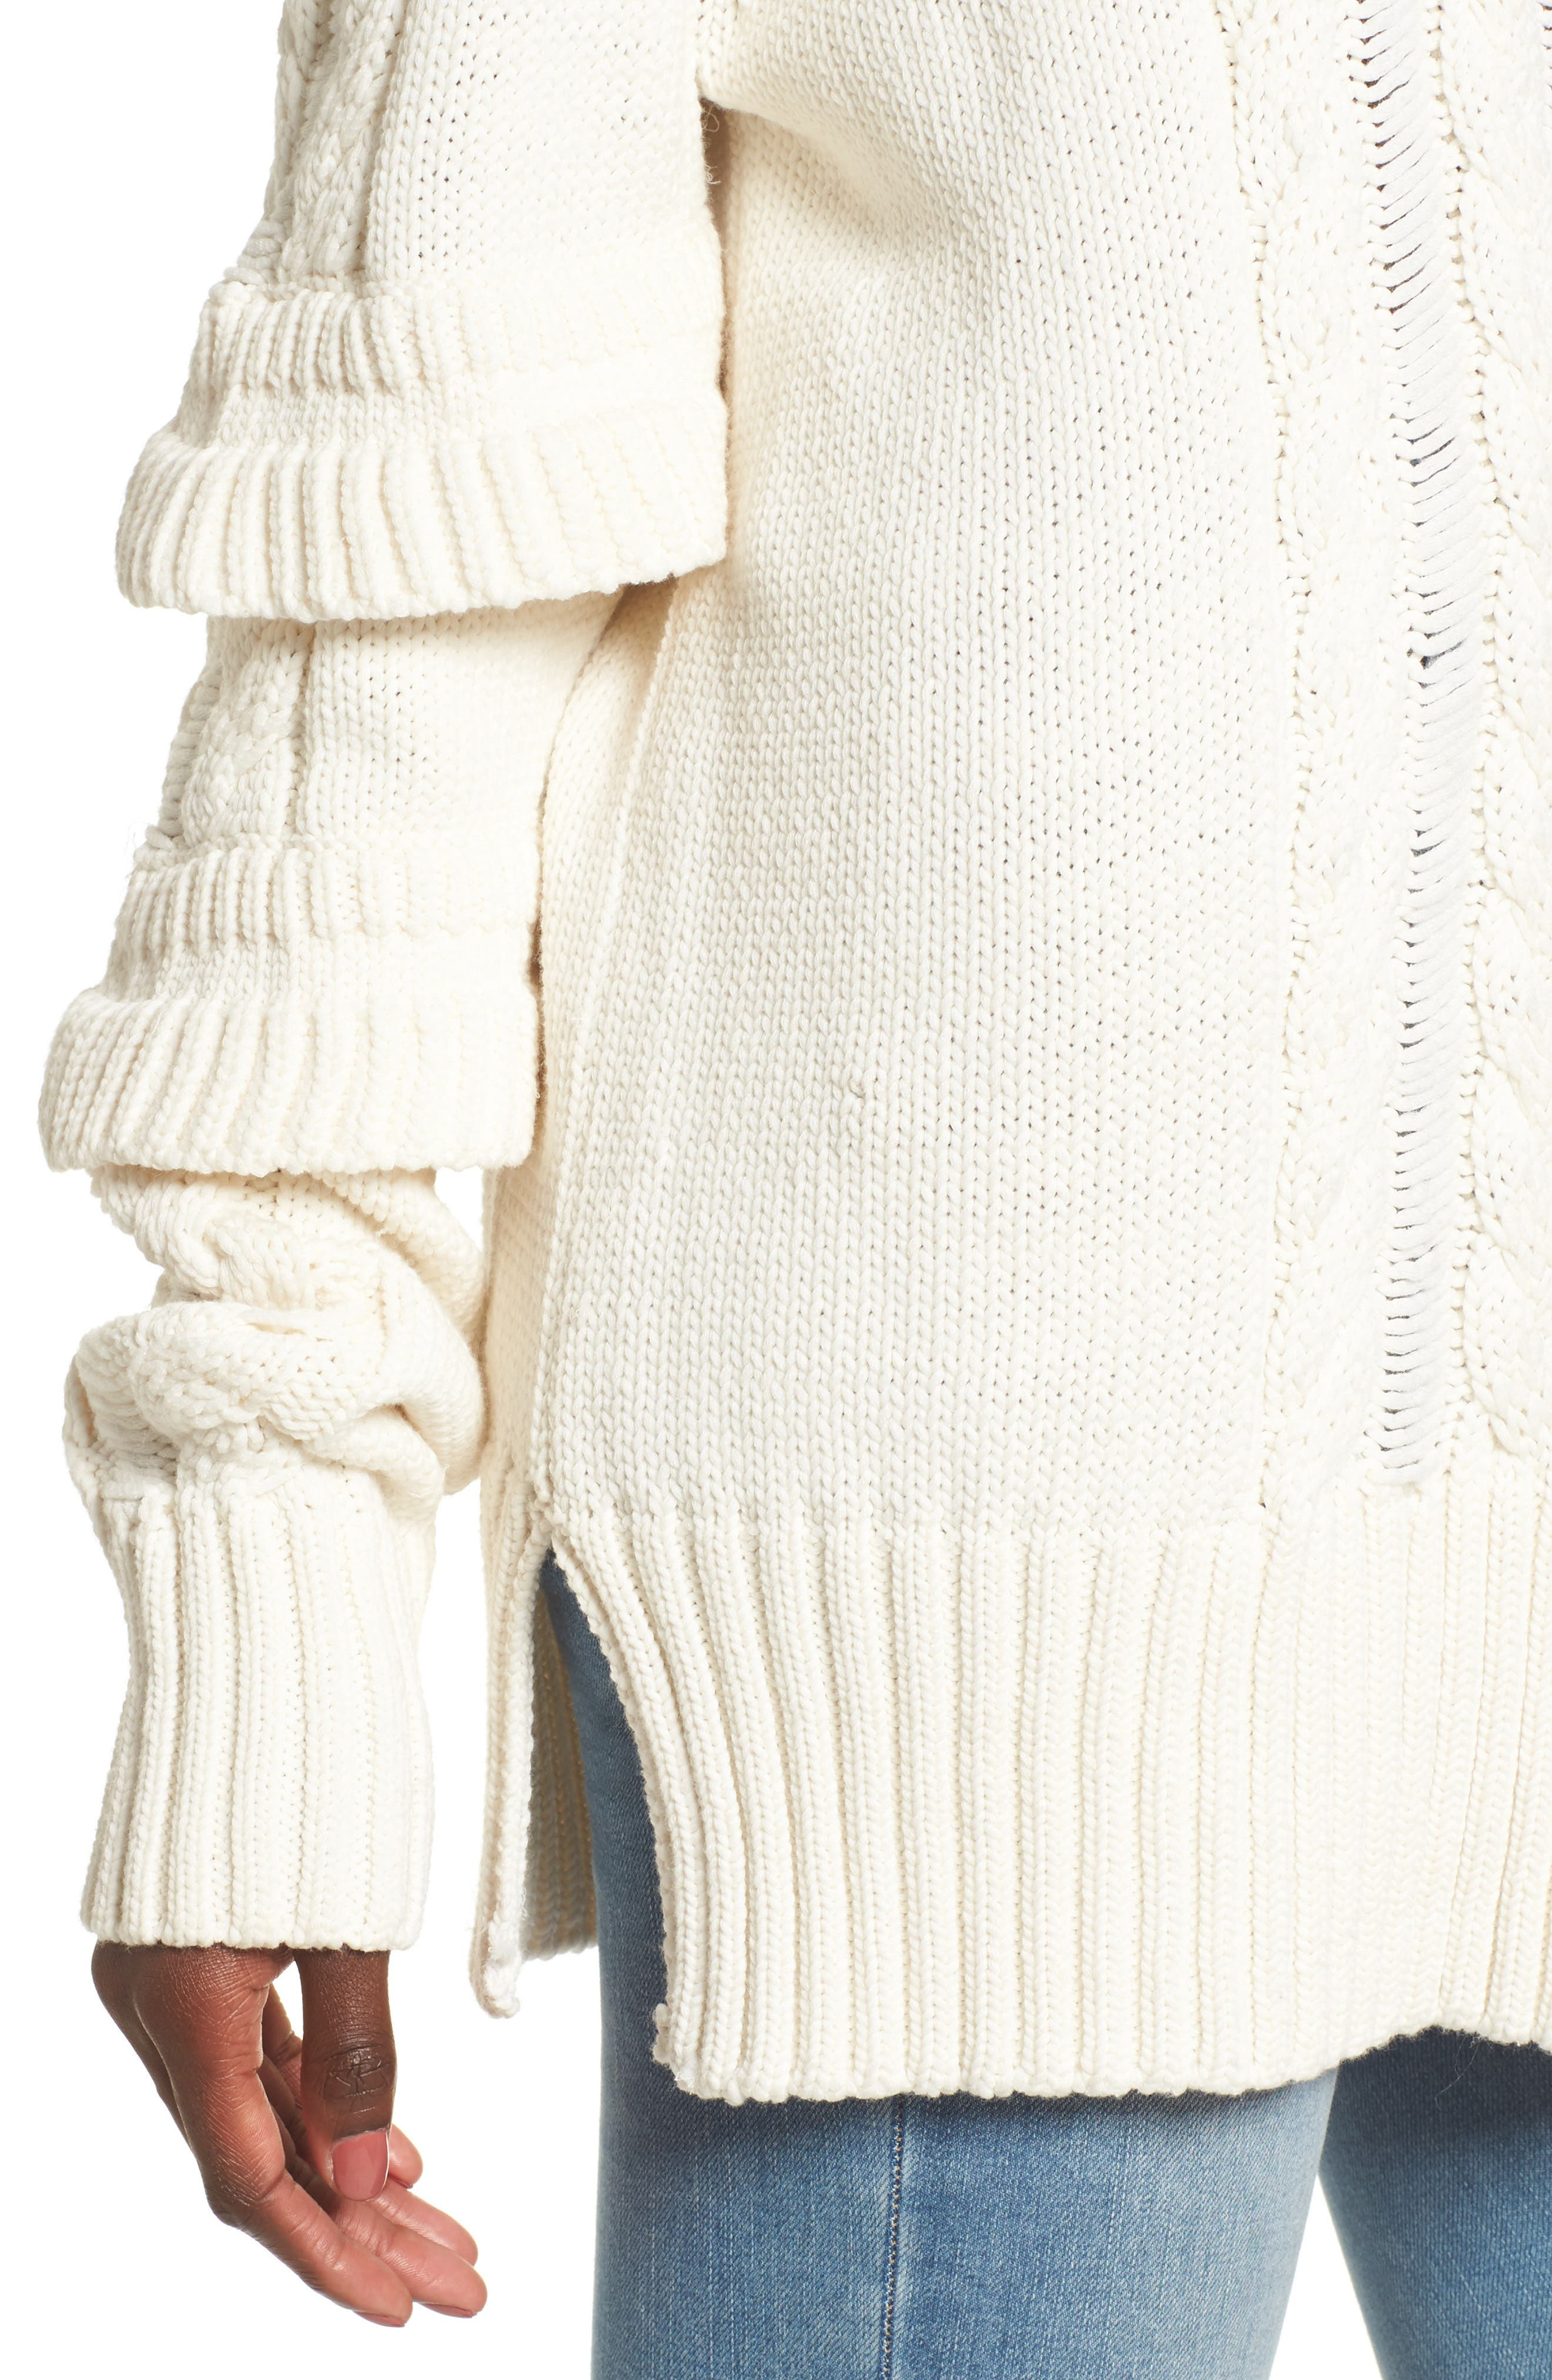 Ruffle Sleeve Cable Knit Sweater,                             Alternate thumbnail 4, color,                             901